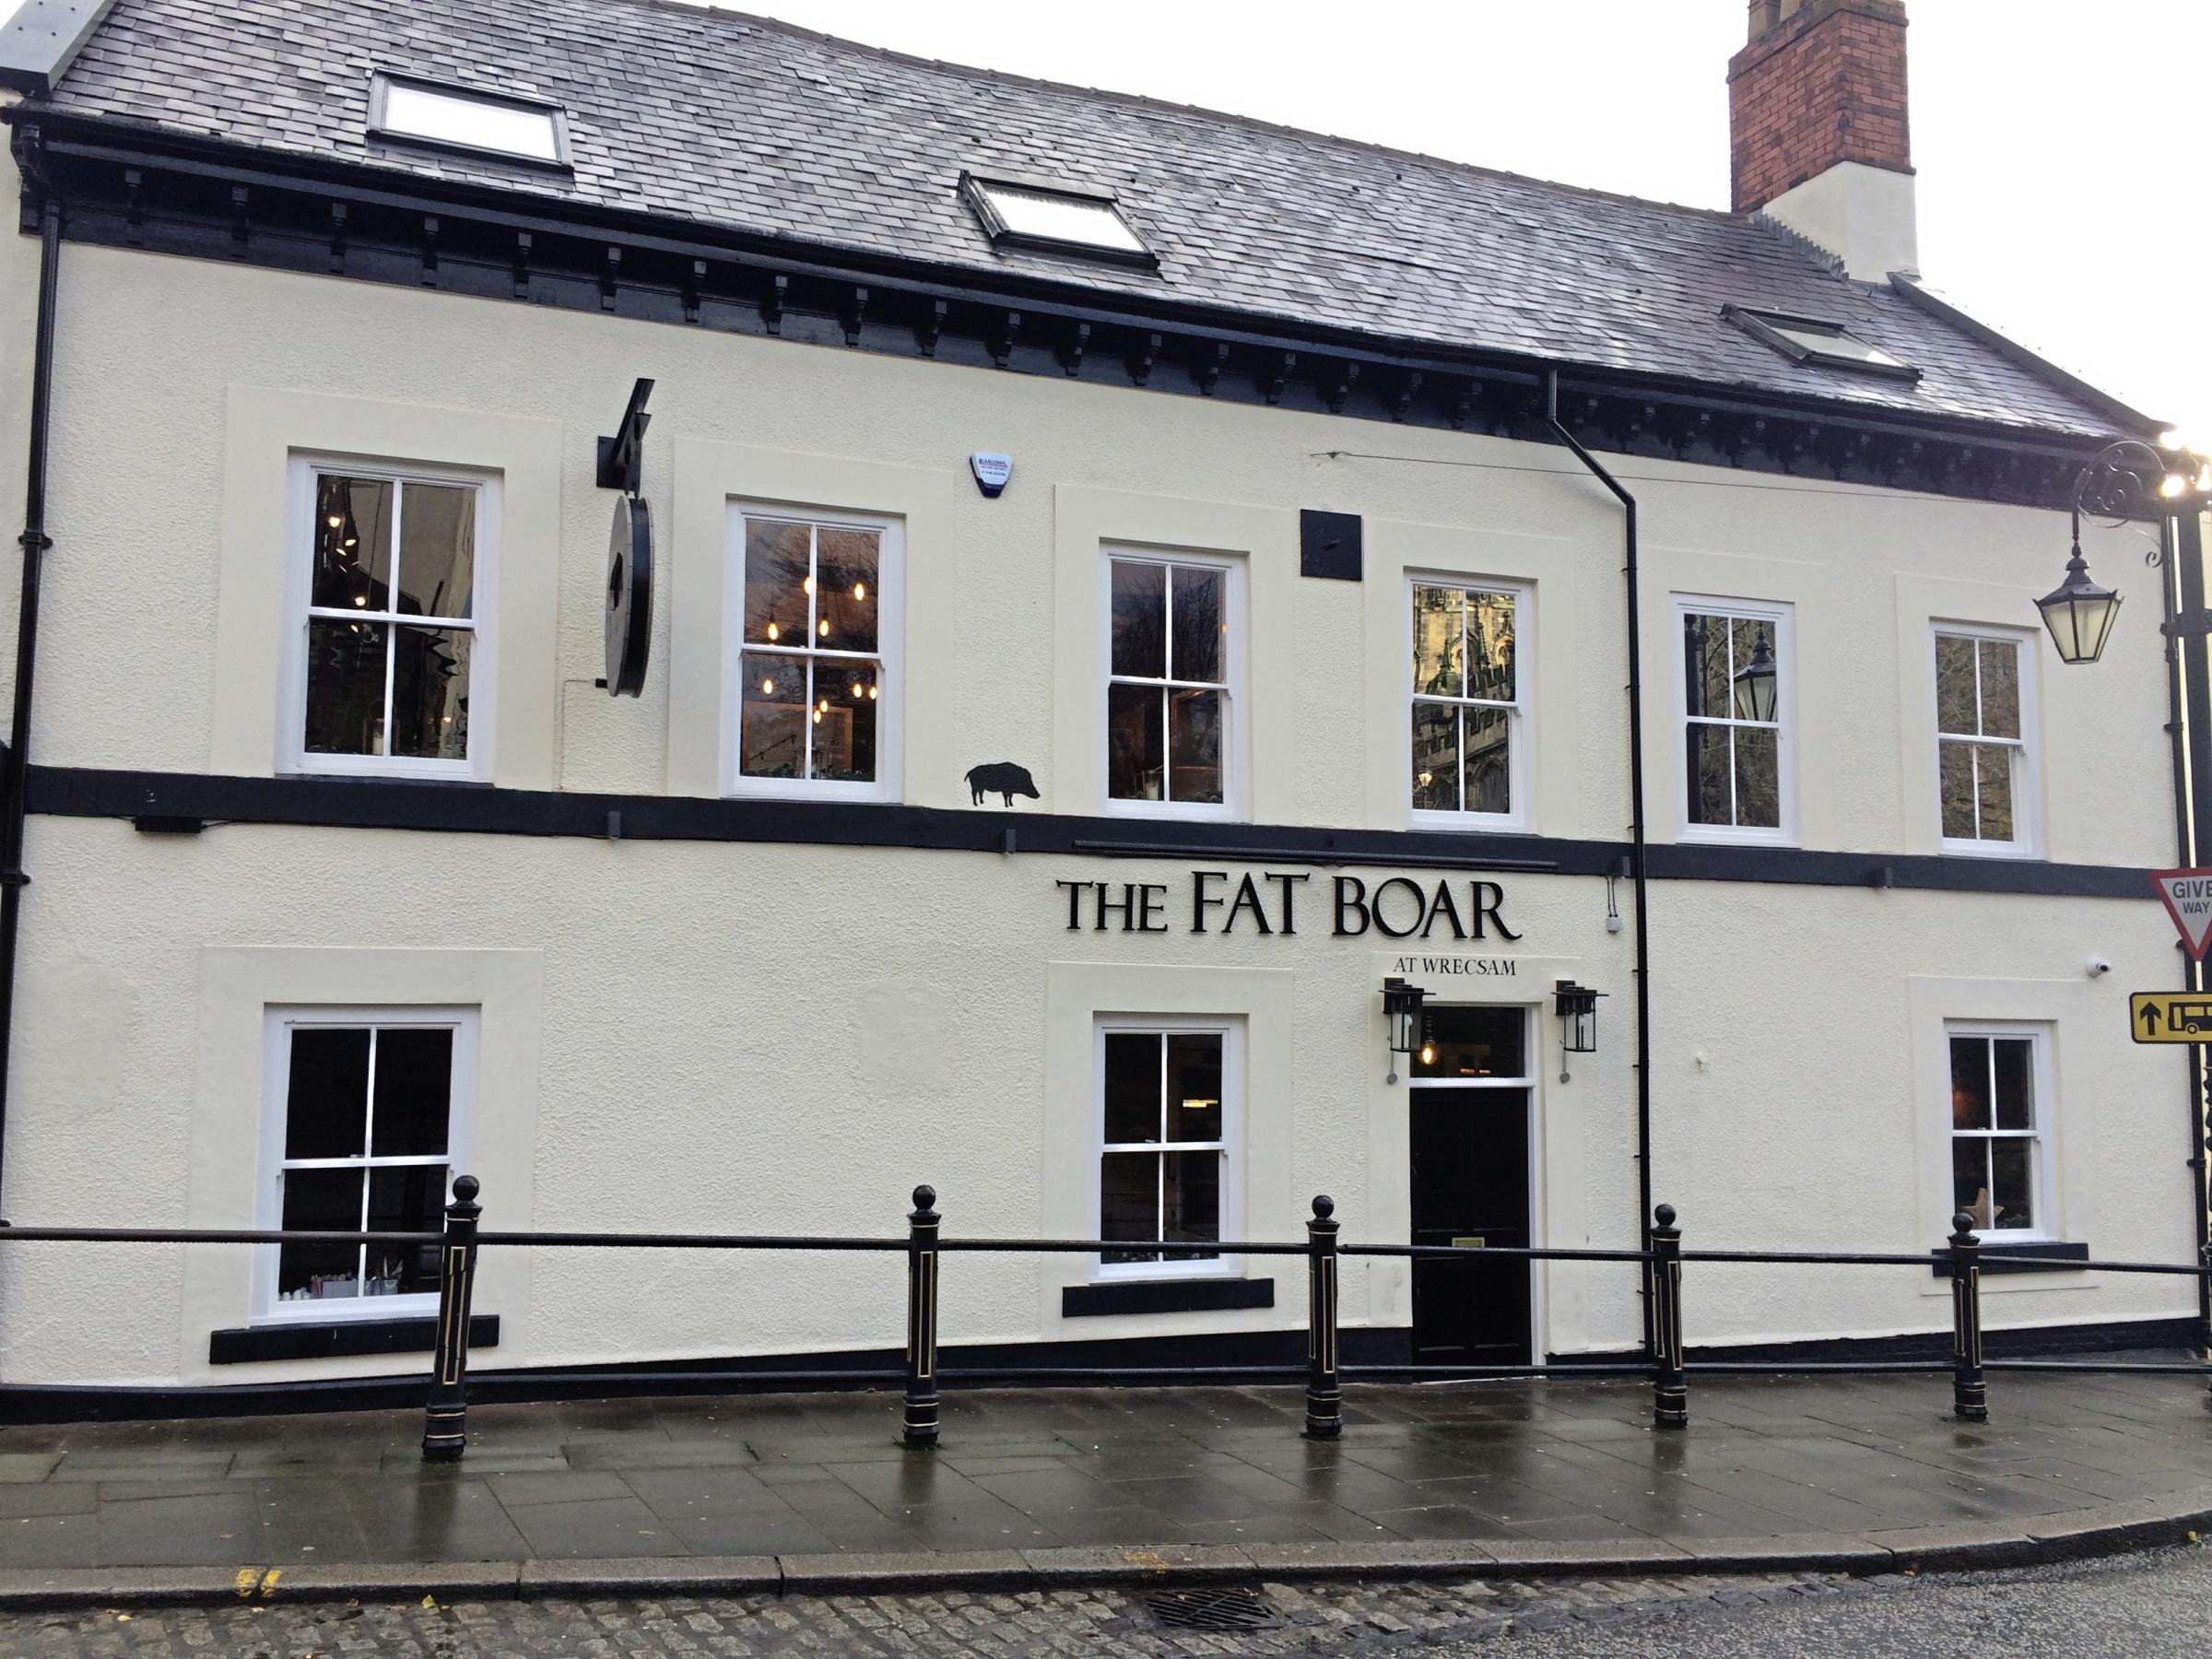 The Fat Boar, Mold